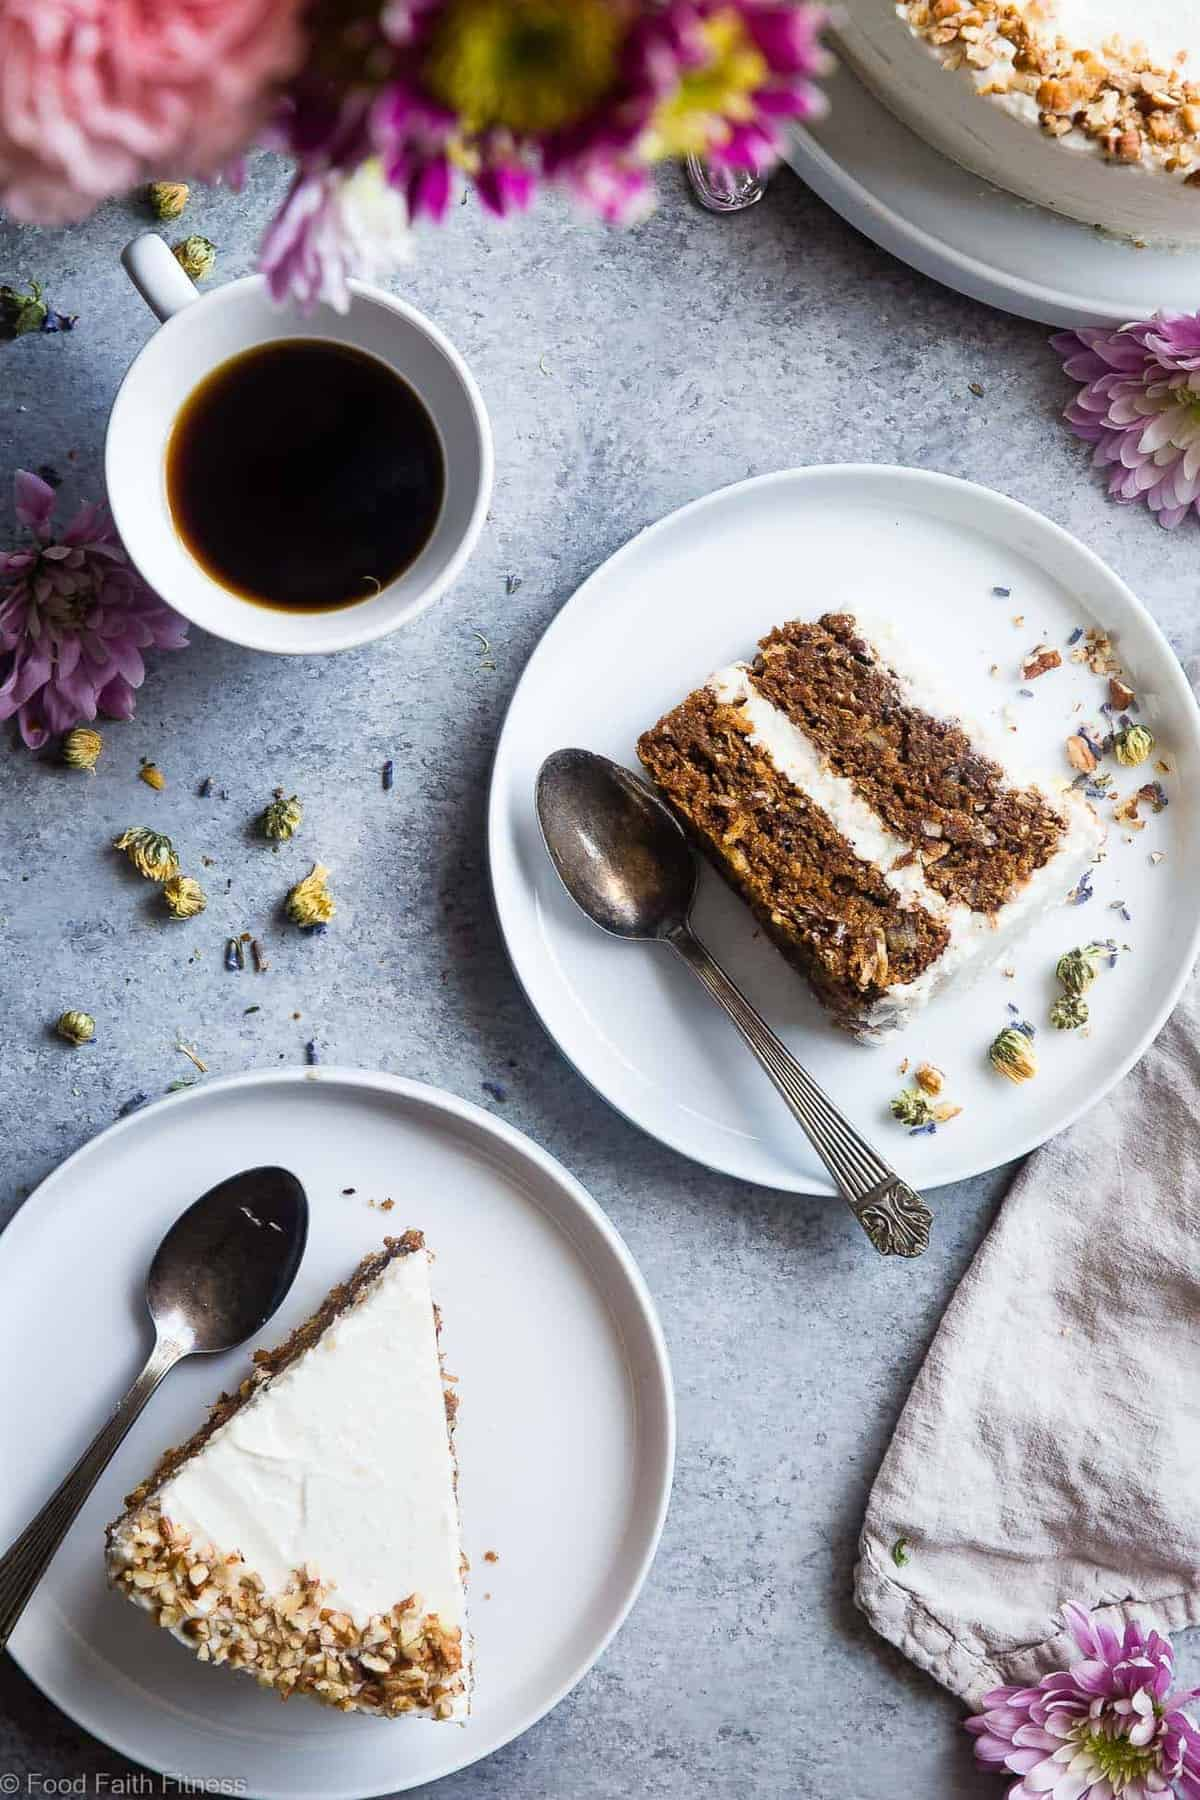 Vegan Gluten Free Dairy Free Carrot Cake -This one bowl, healthy carrot cake is SO moist and tender, you'll never know it's plant based, made without eggs and is gluten/grain/dairy/refined sugar free! Perfect for Easter! | #Foodfaitfitness | #Vegan #Easter #Glutenfree #DairyFree #Carrotcake